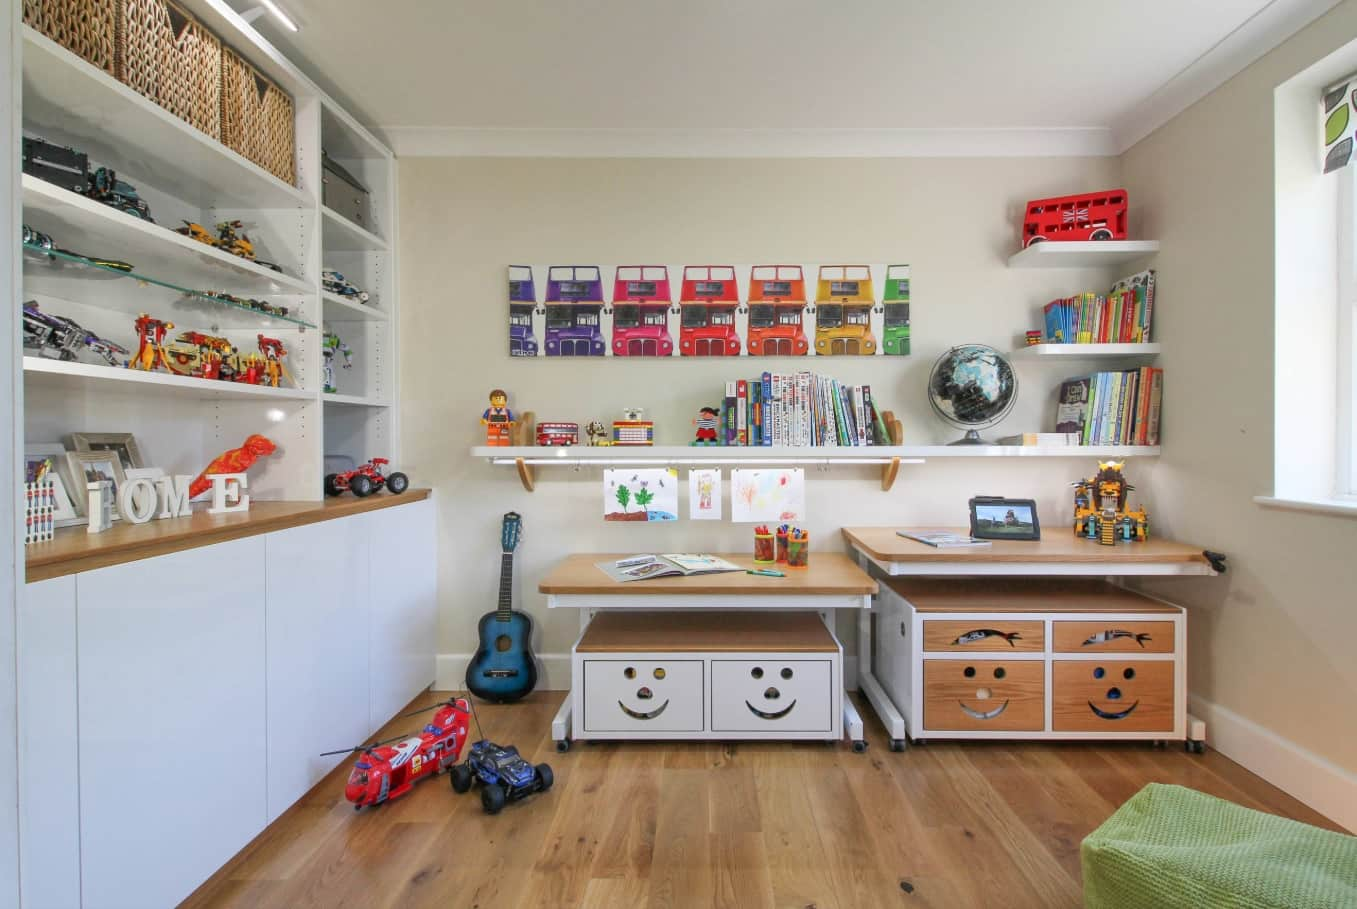 Unusual children's room with a great set of toys, educational furniture and adjustable desks